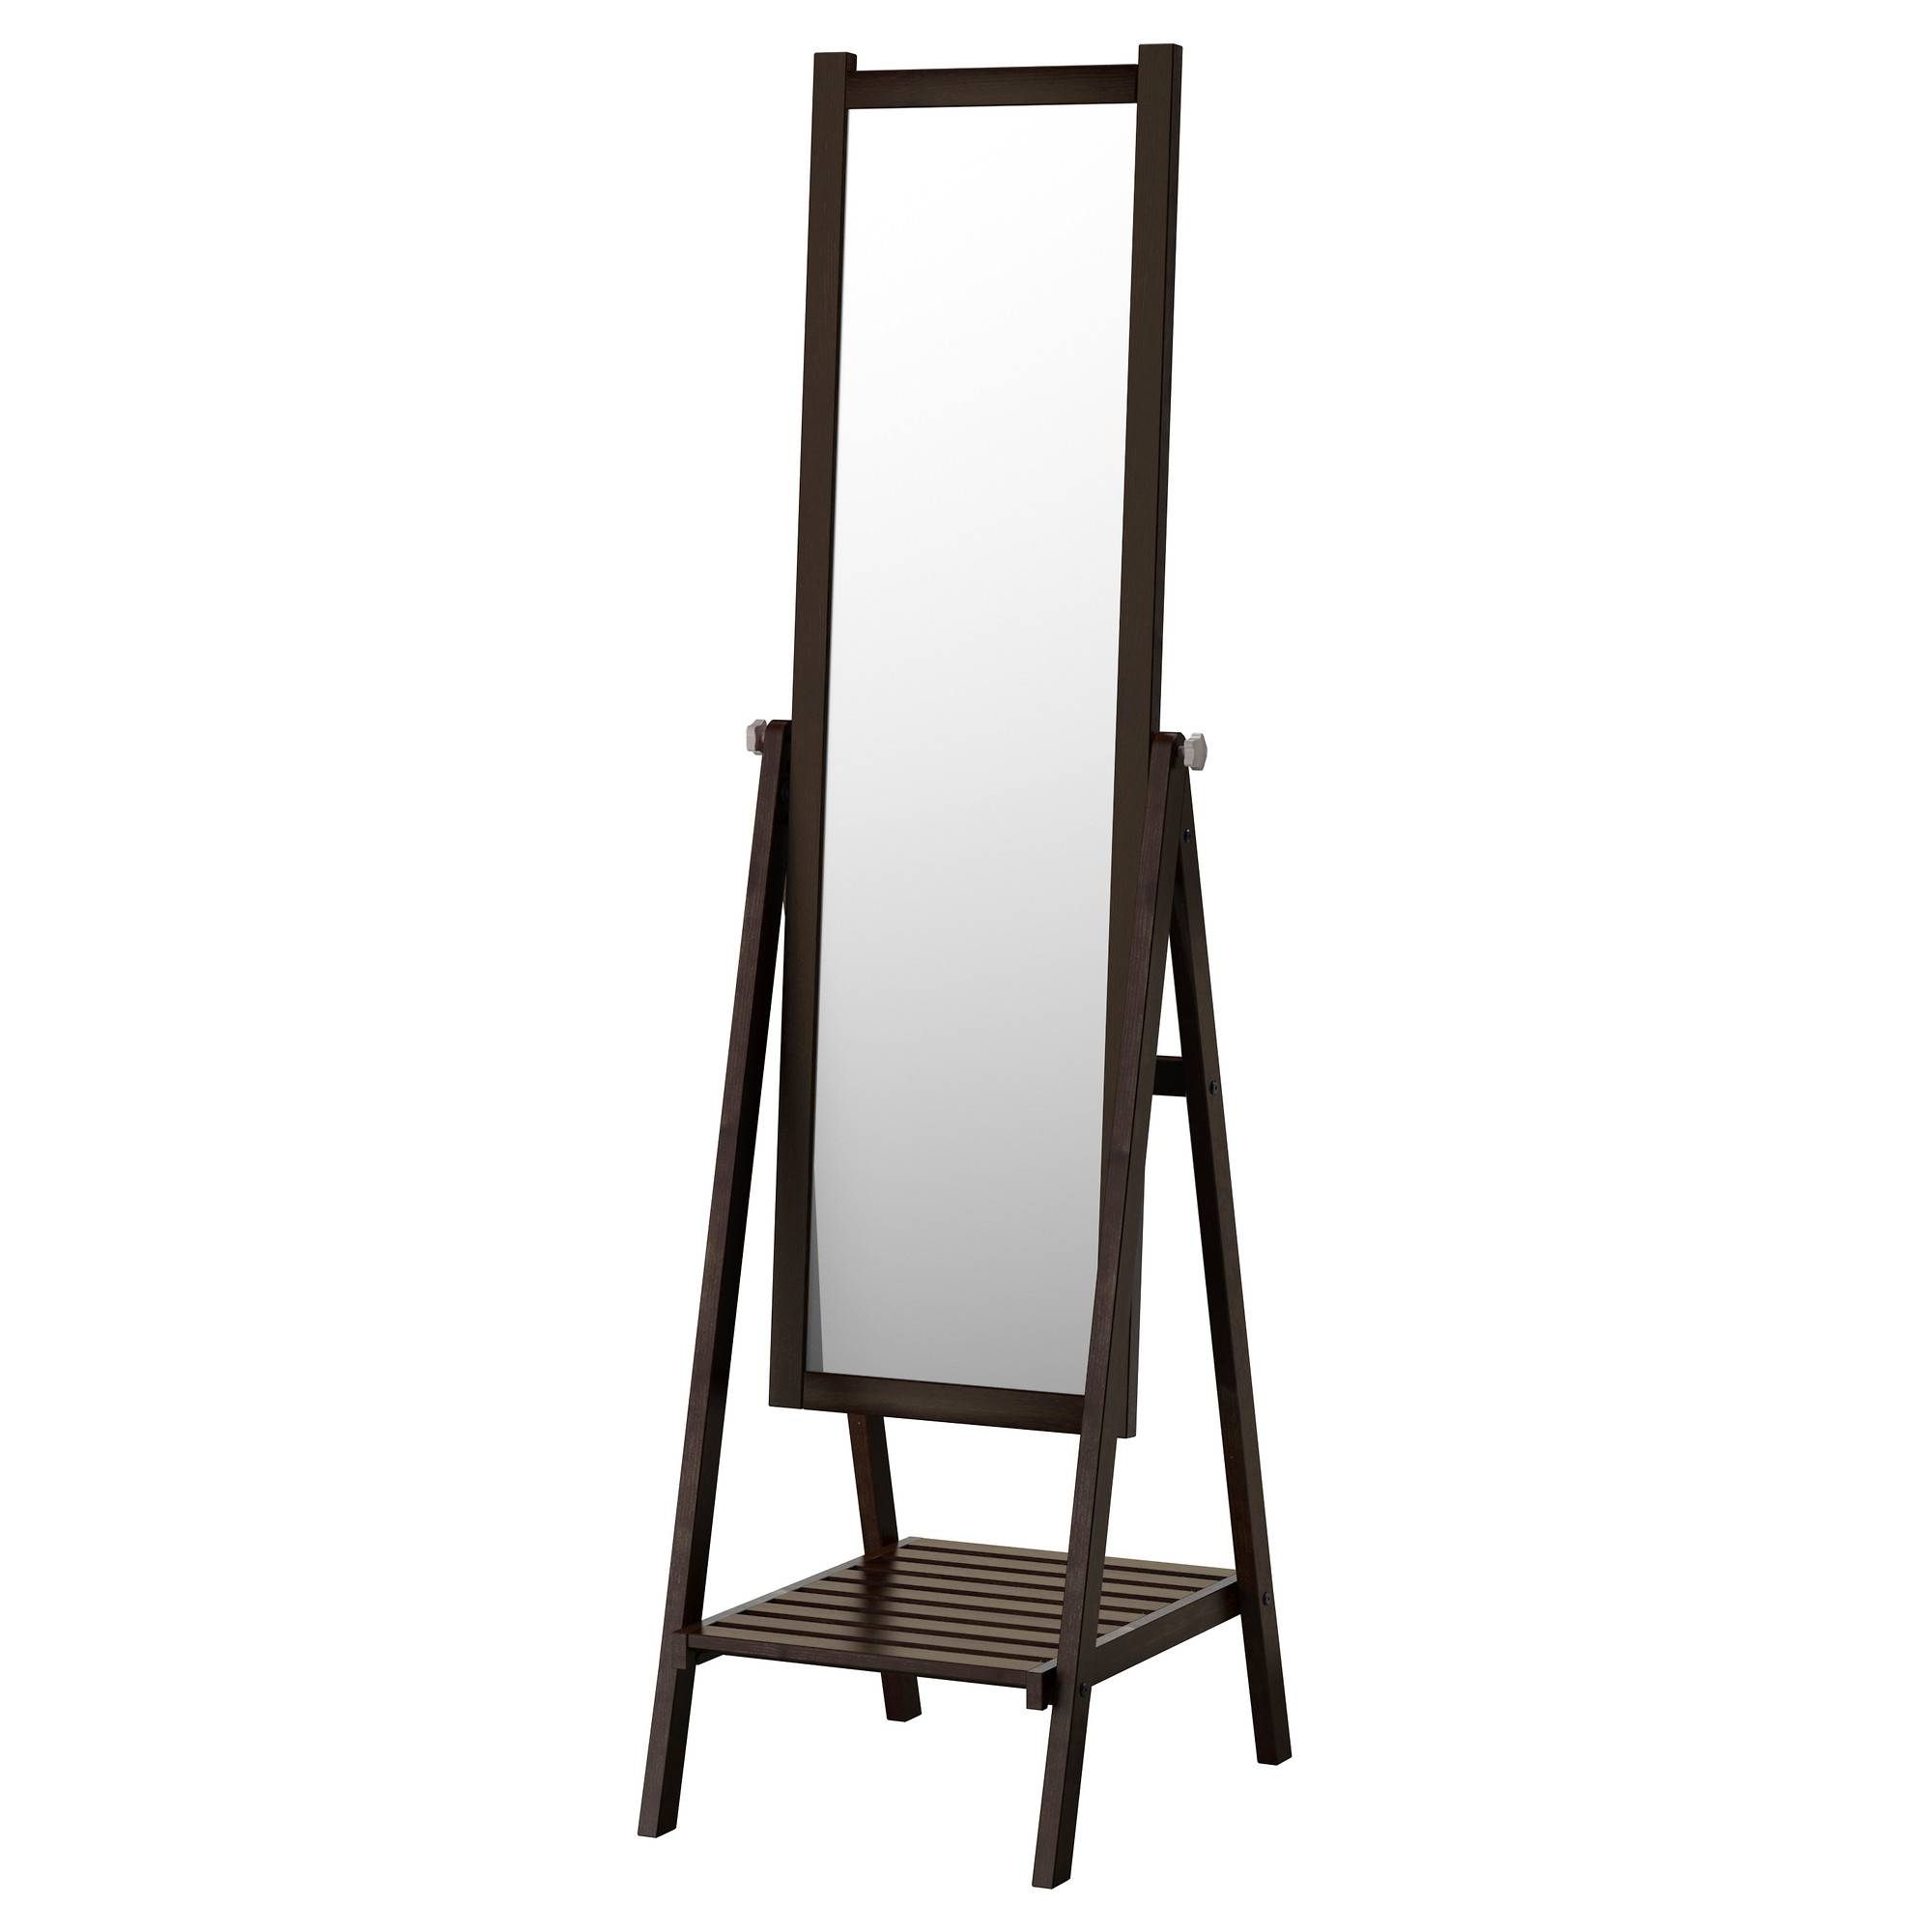 Mirrors - Ikea pertaining to Huge Standing Mirrors (Image 15 of 15)